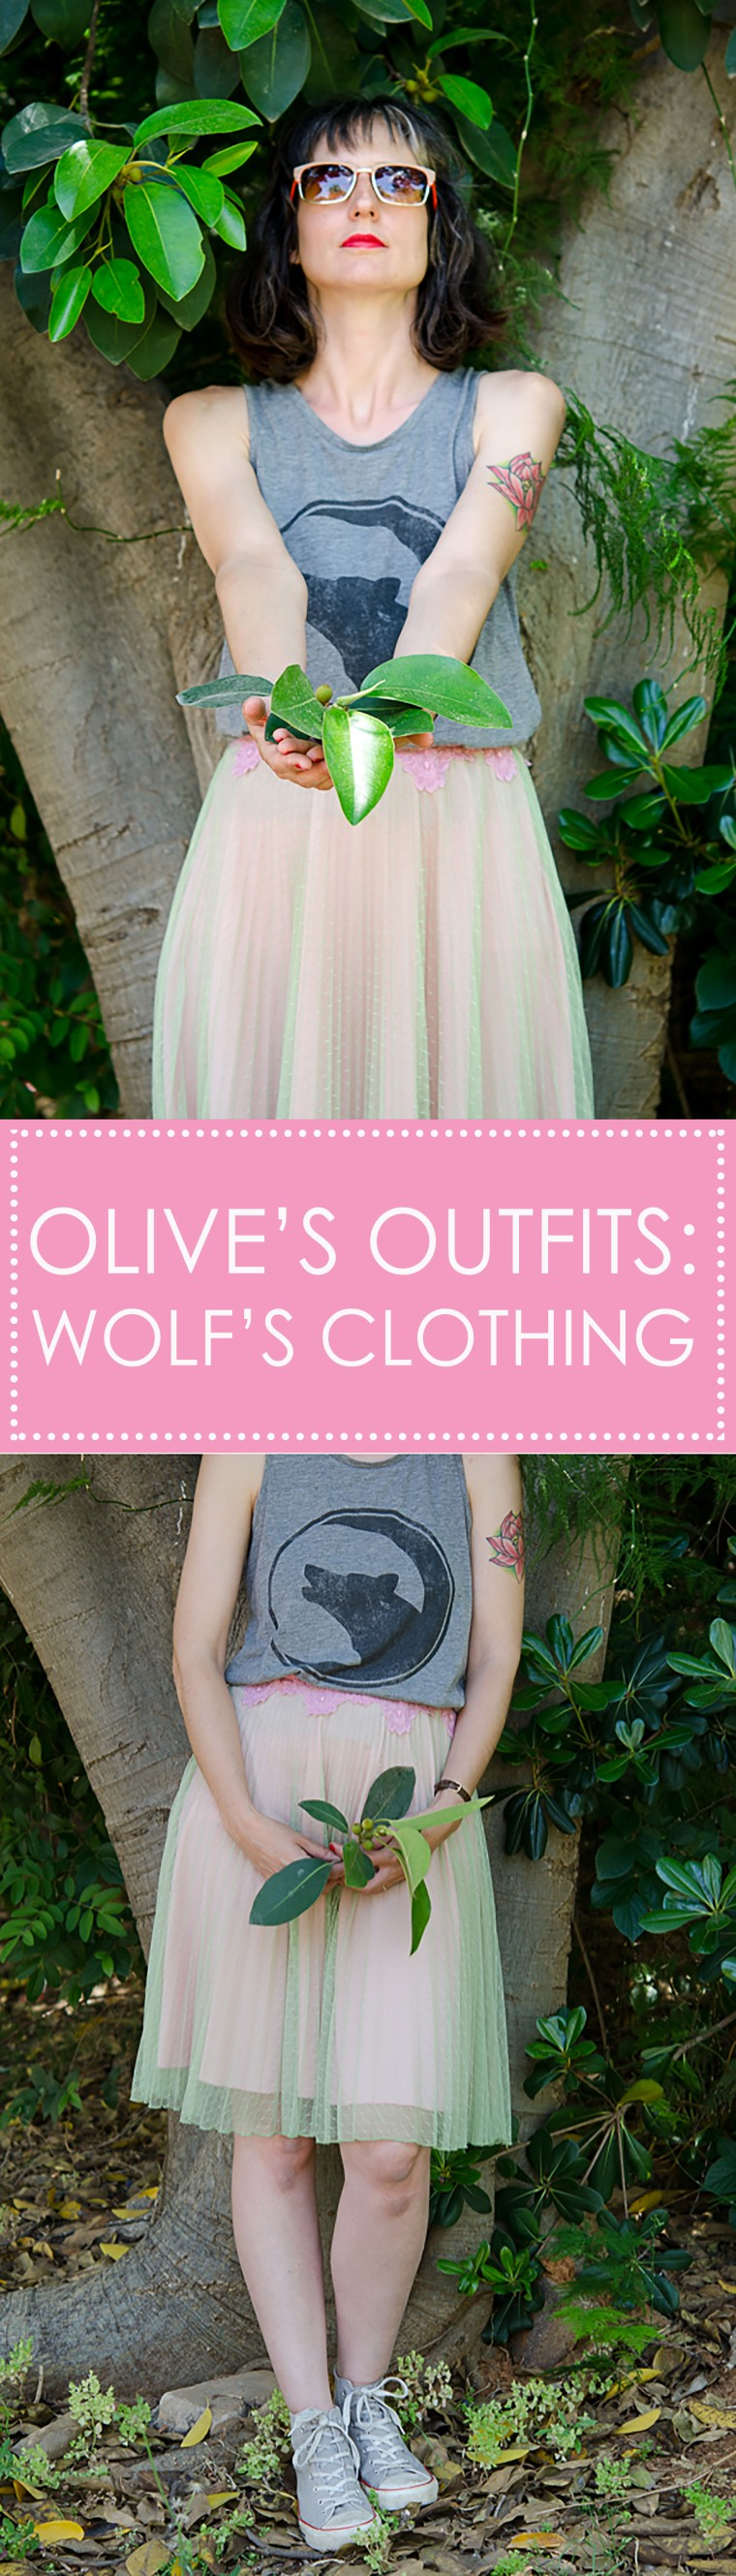 Olive's Outfits: Wolf's Clothing